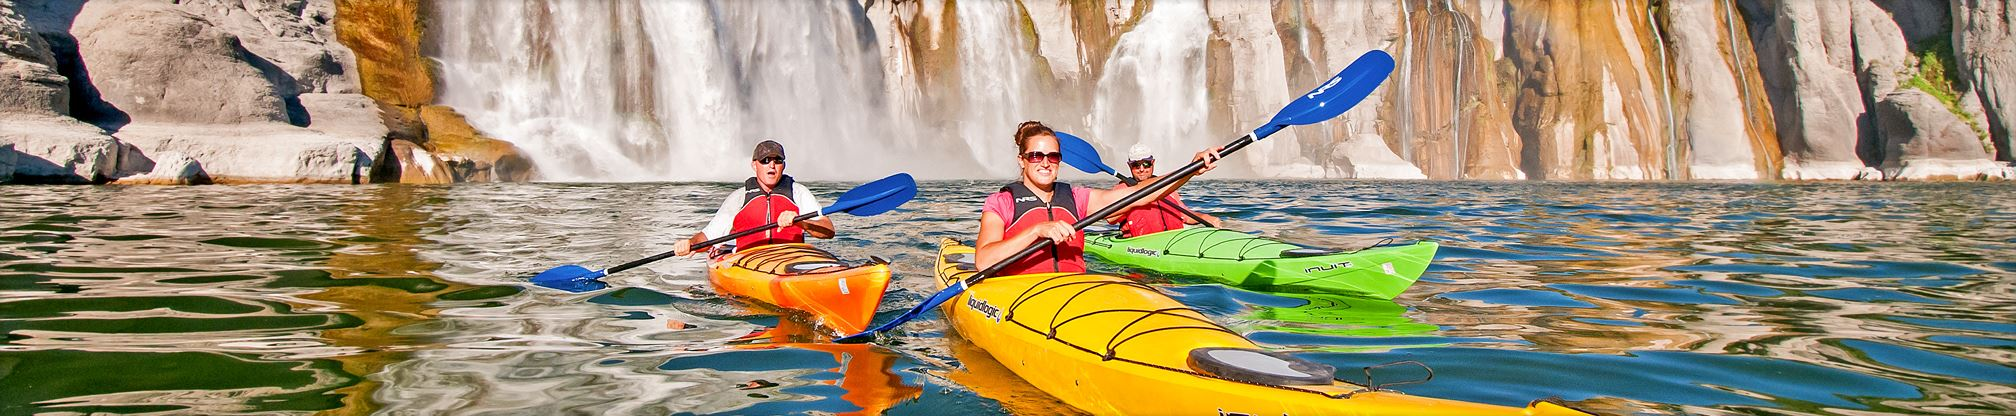 Shoshone Falls Scenic Attraction Twin Falls Id Official Website